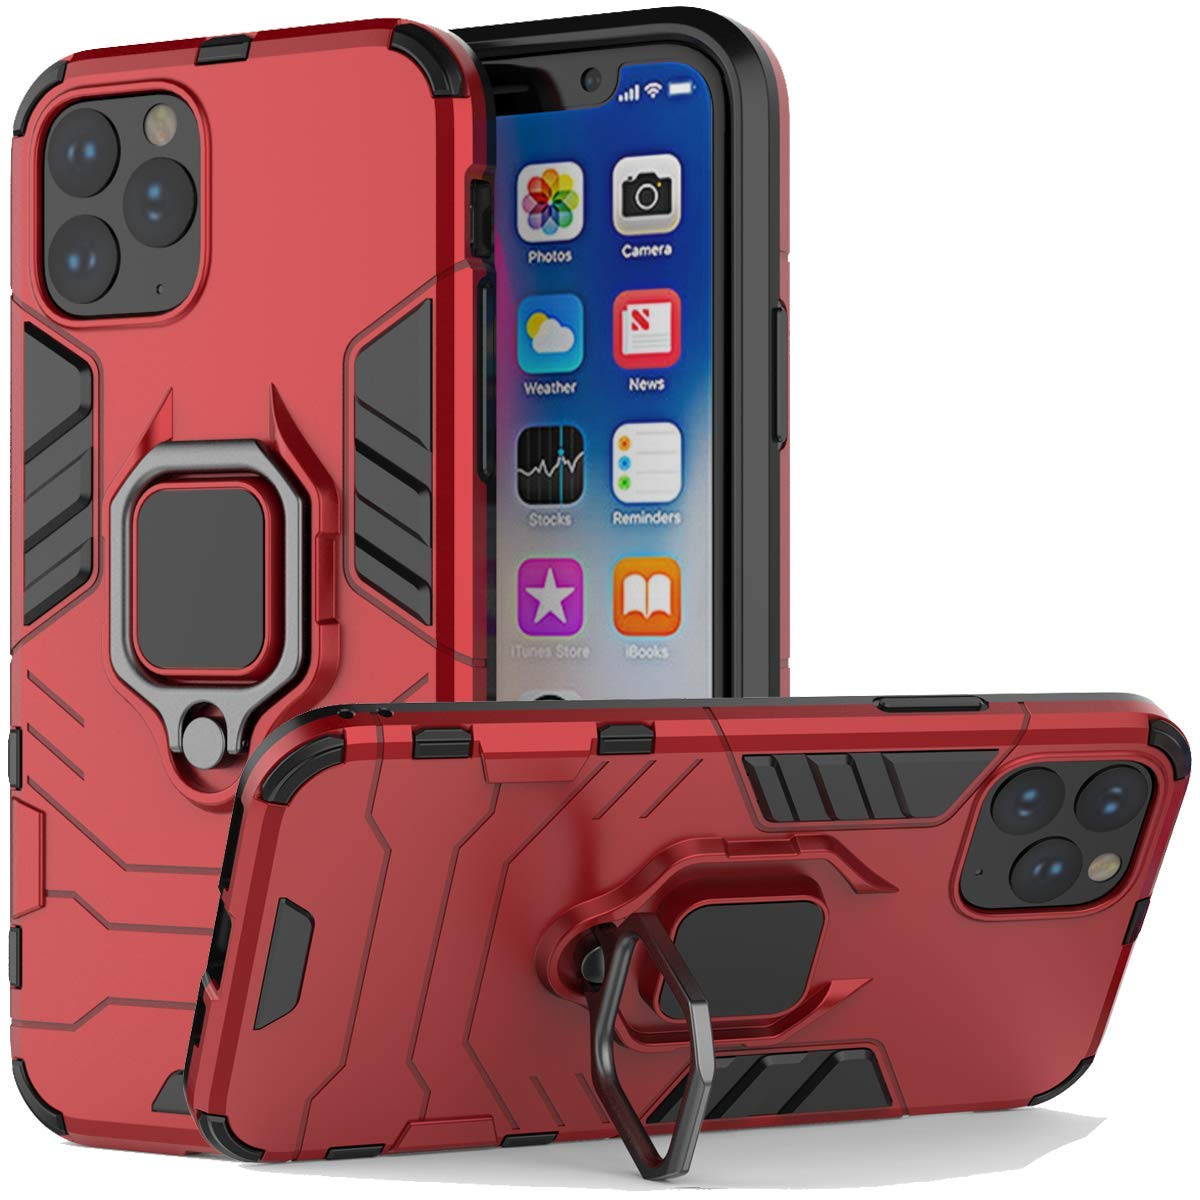 iPhone 11 Pro Case, Futanwei Rugged Metal [Fit Magnetic Car Mount] Rotating Ring Kickstand Phone Case, Double Layer Hybrid Anti-Fall Shockproof Armor Cover for iPhone 11 Pro 5.8 Inch, red by Futanwei